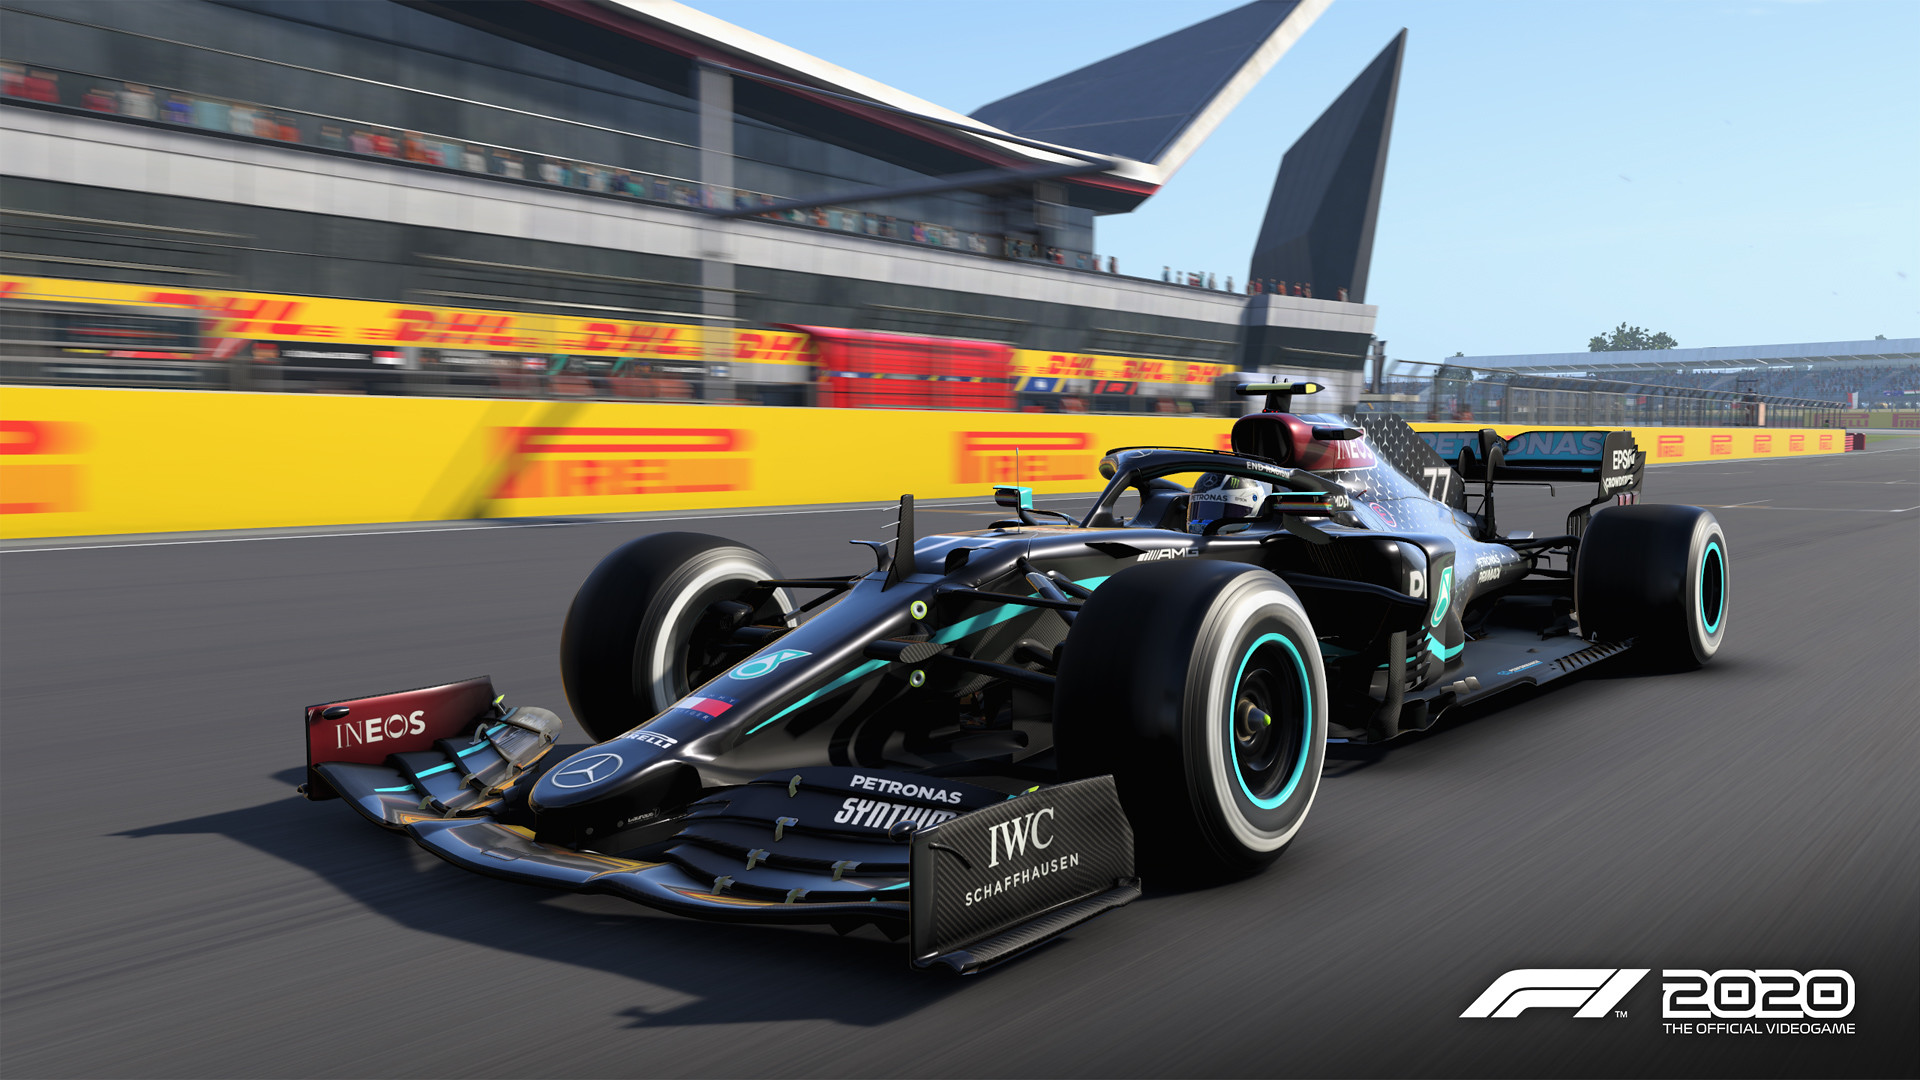 F1 2020 Game F1 2020 - Update Patch 1.06 Deployed - Black Mercedes AMG 4